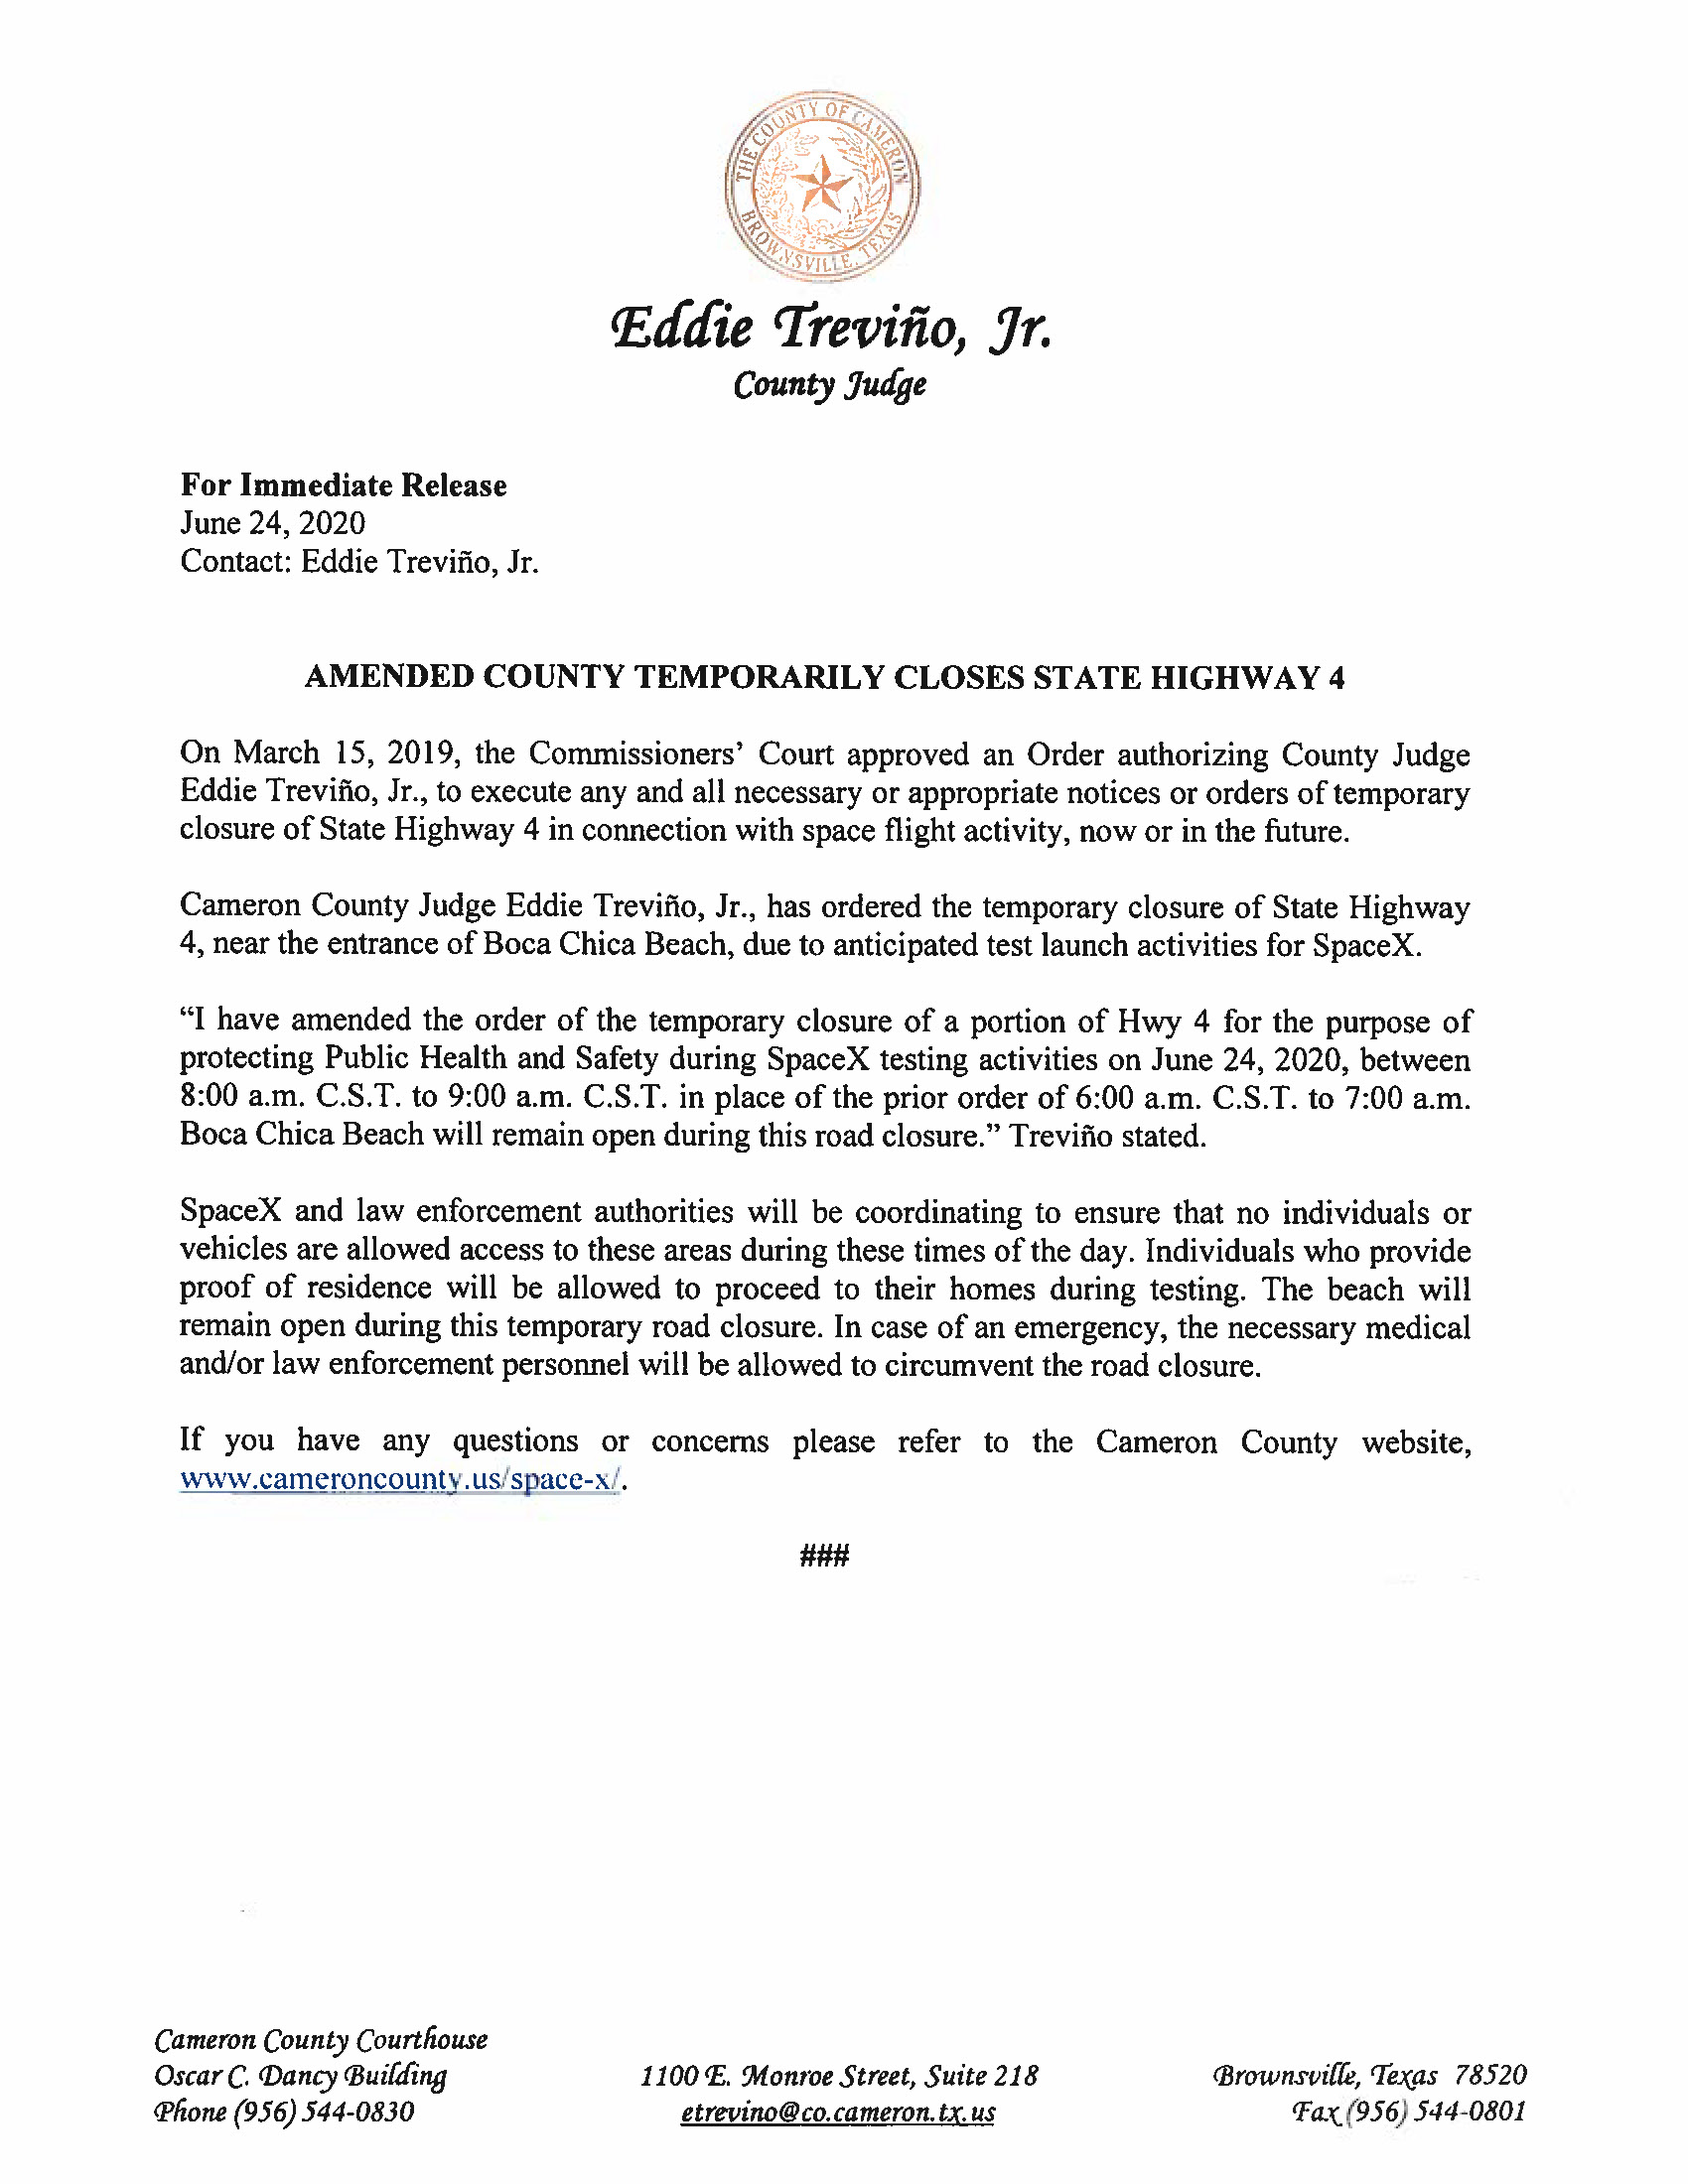 Amended Press Release In English And Spanish.06.24.20 Page 1